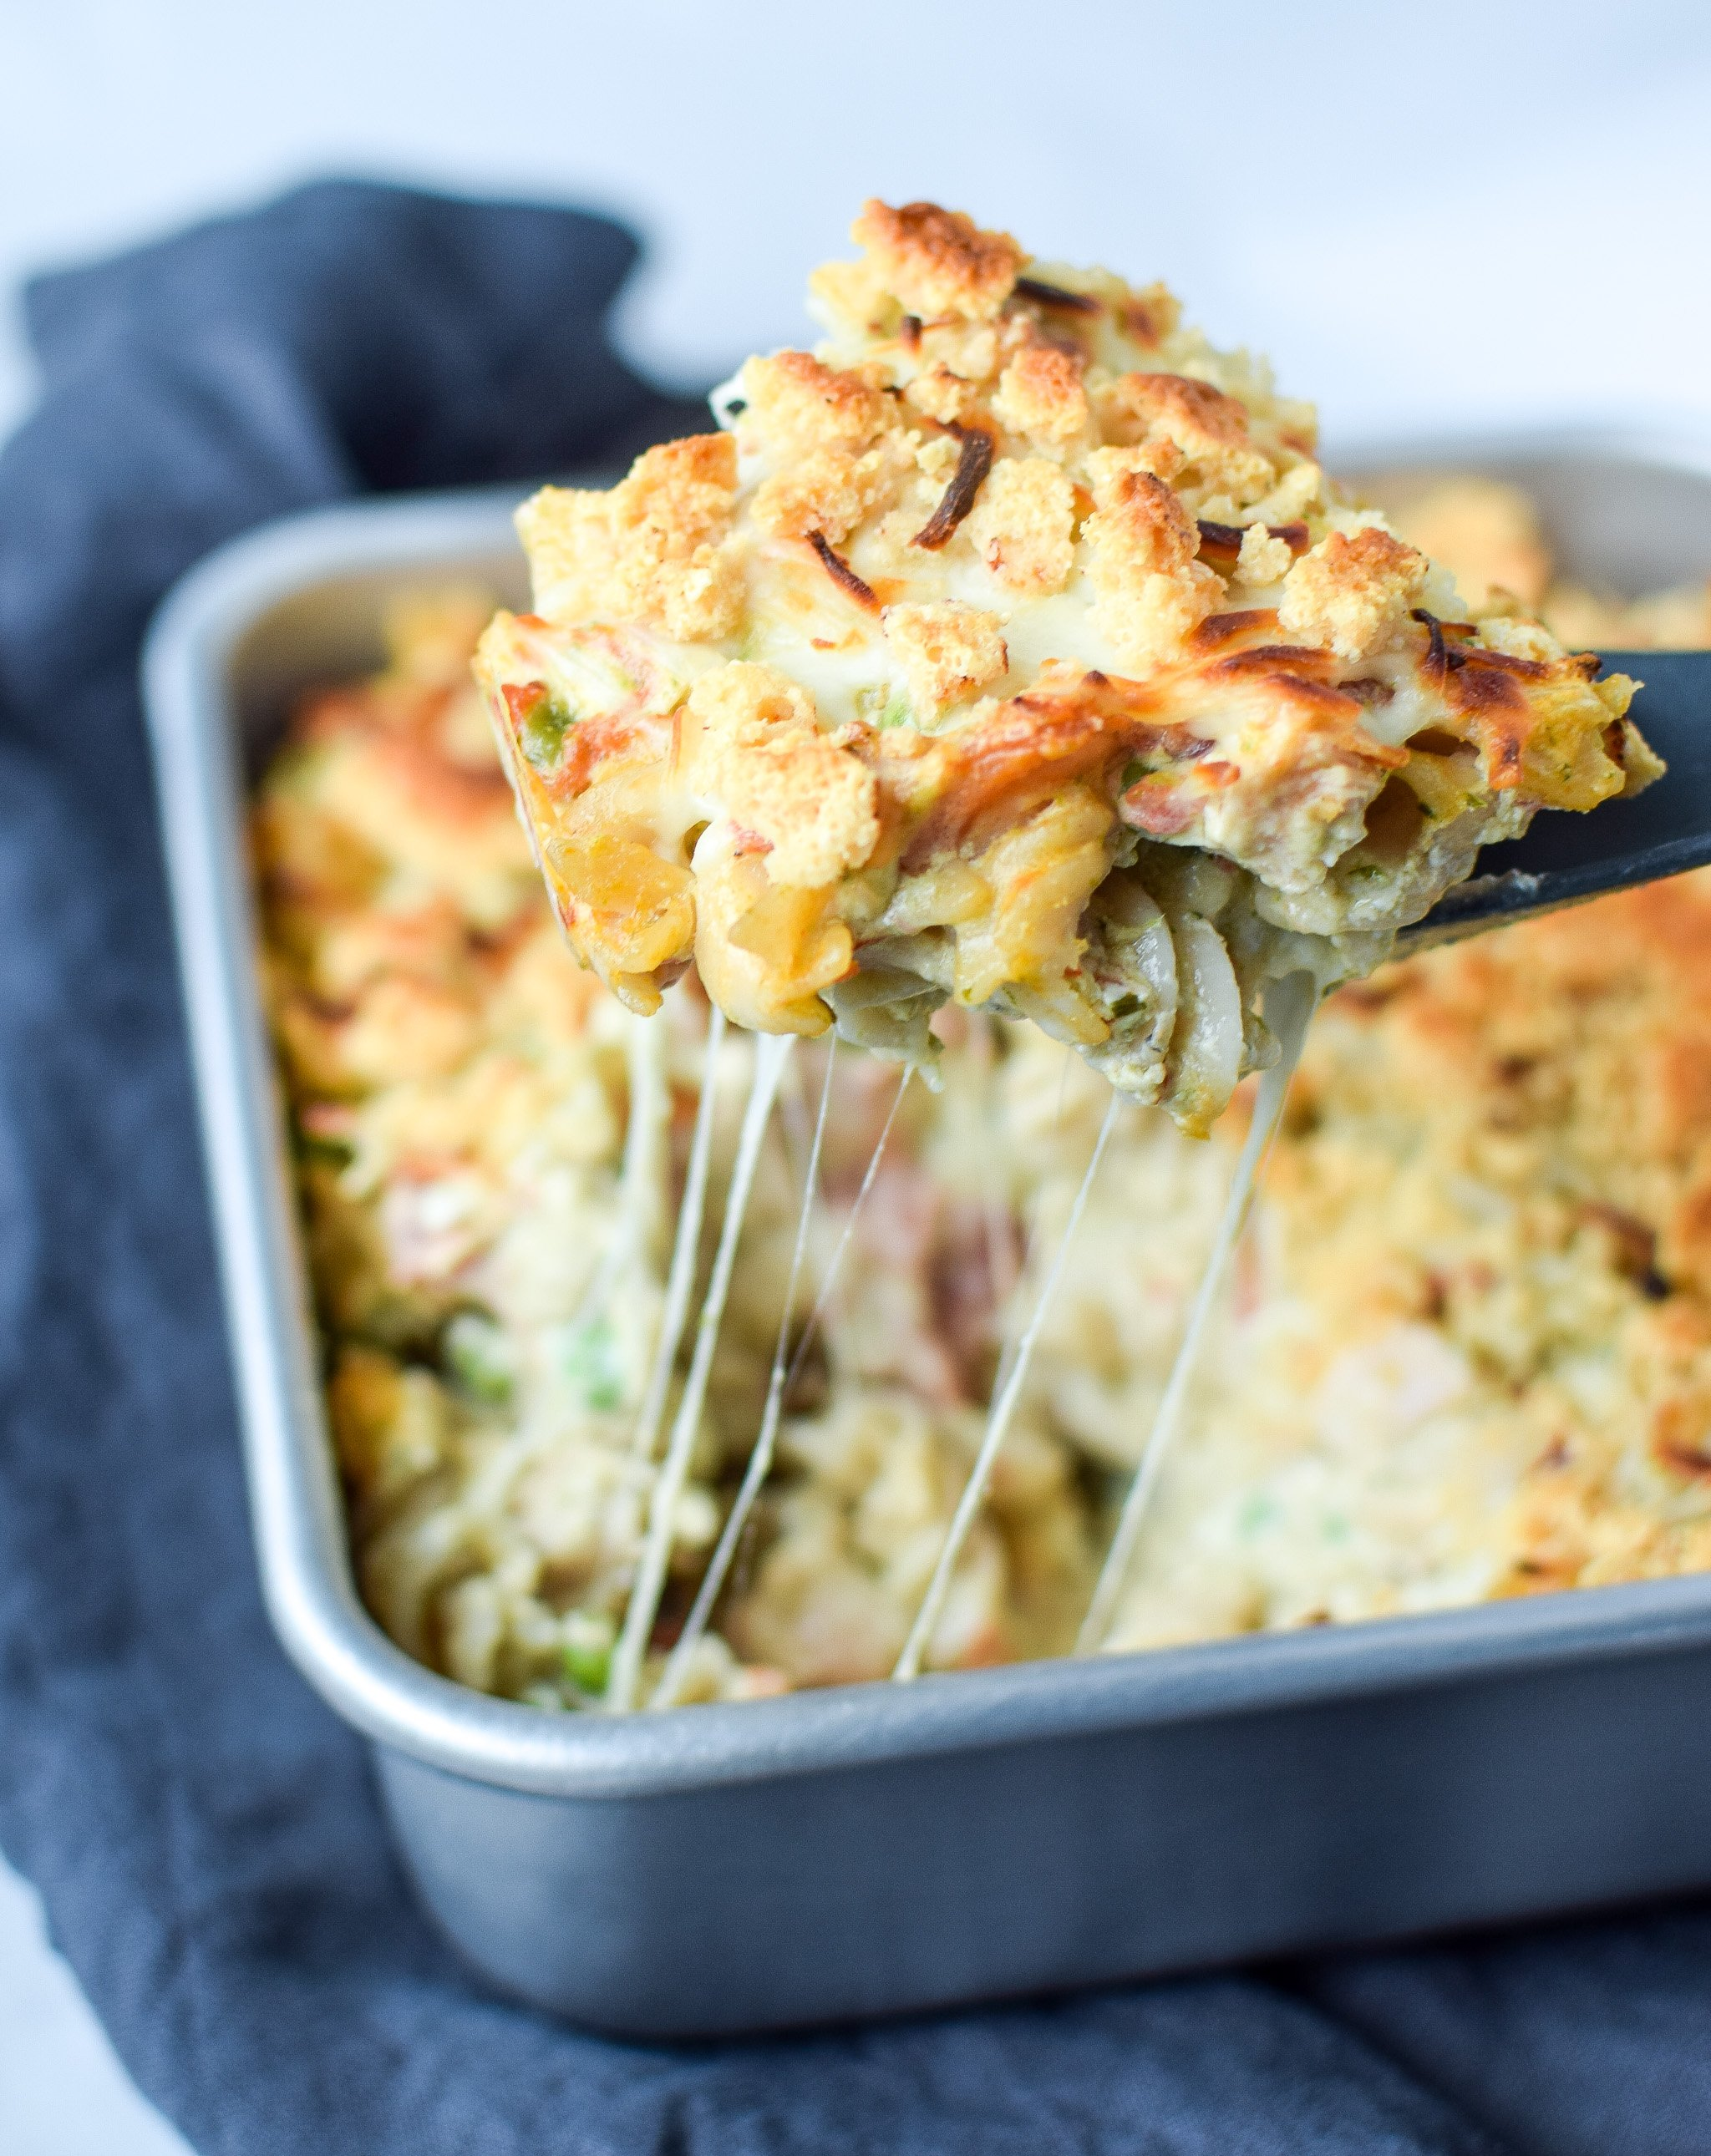 Creamy Pesto Pasta Chicken Bake with Peas - Project Meal Plan